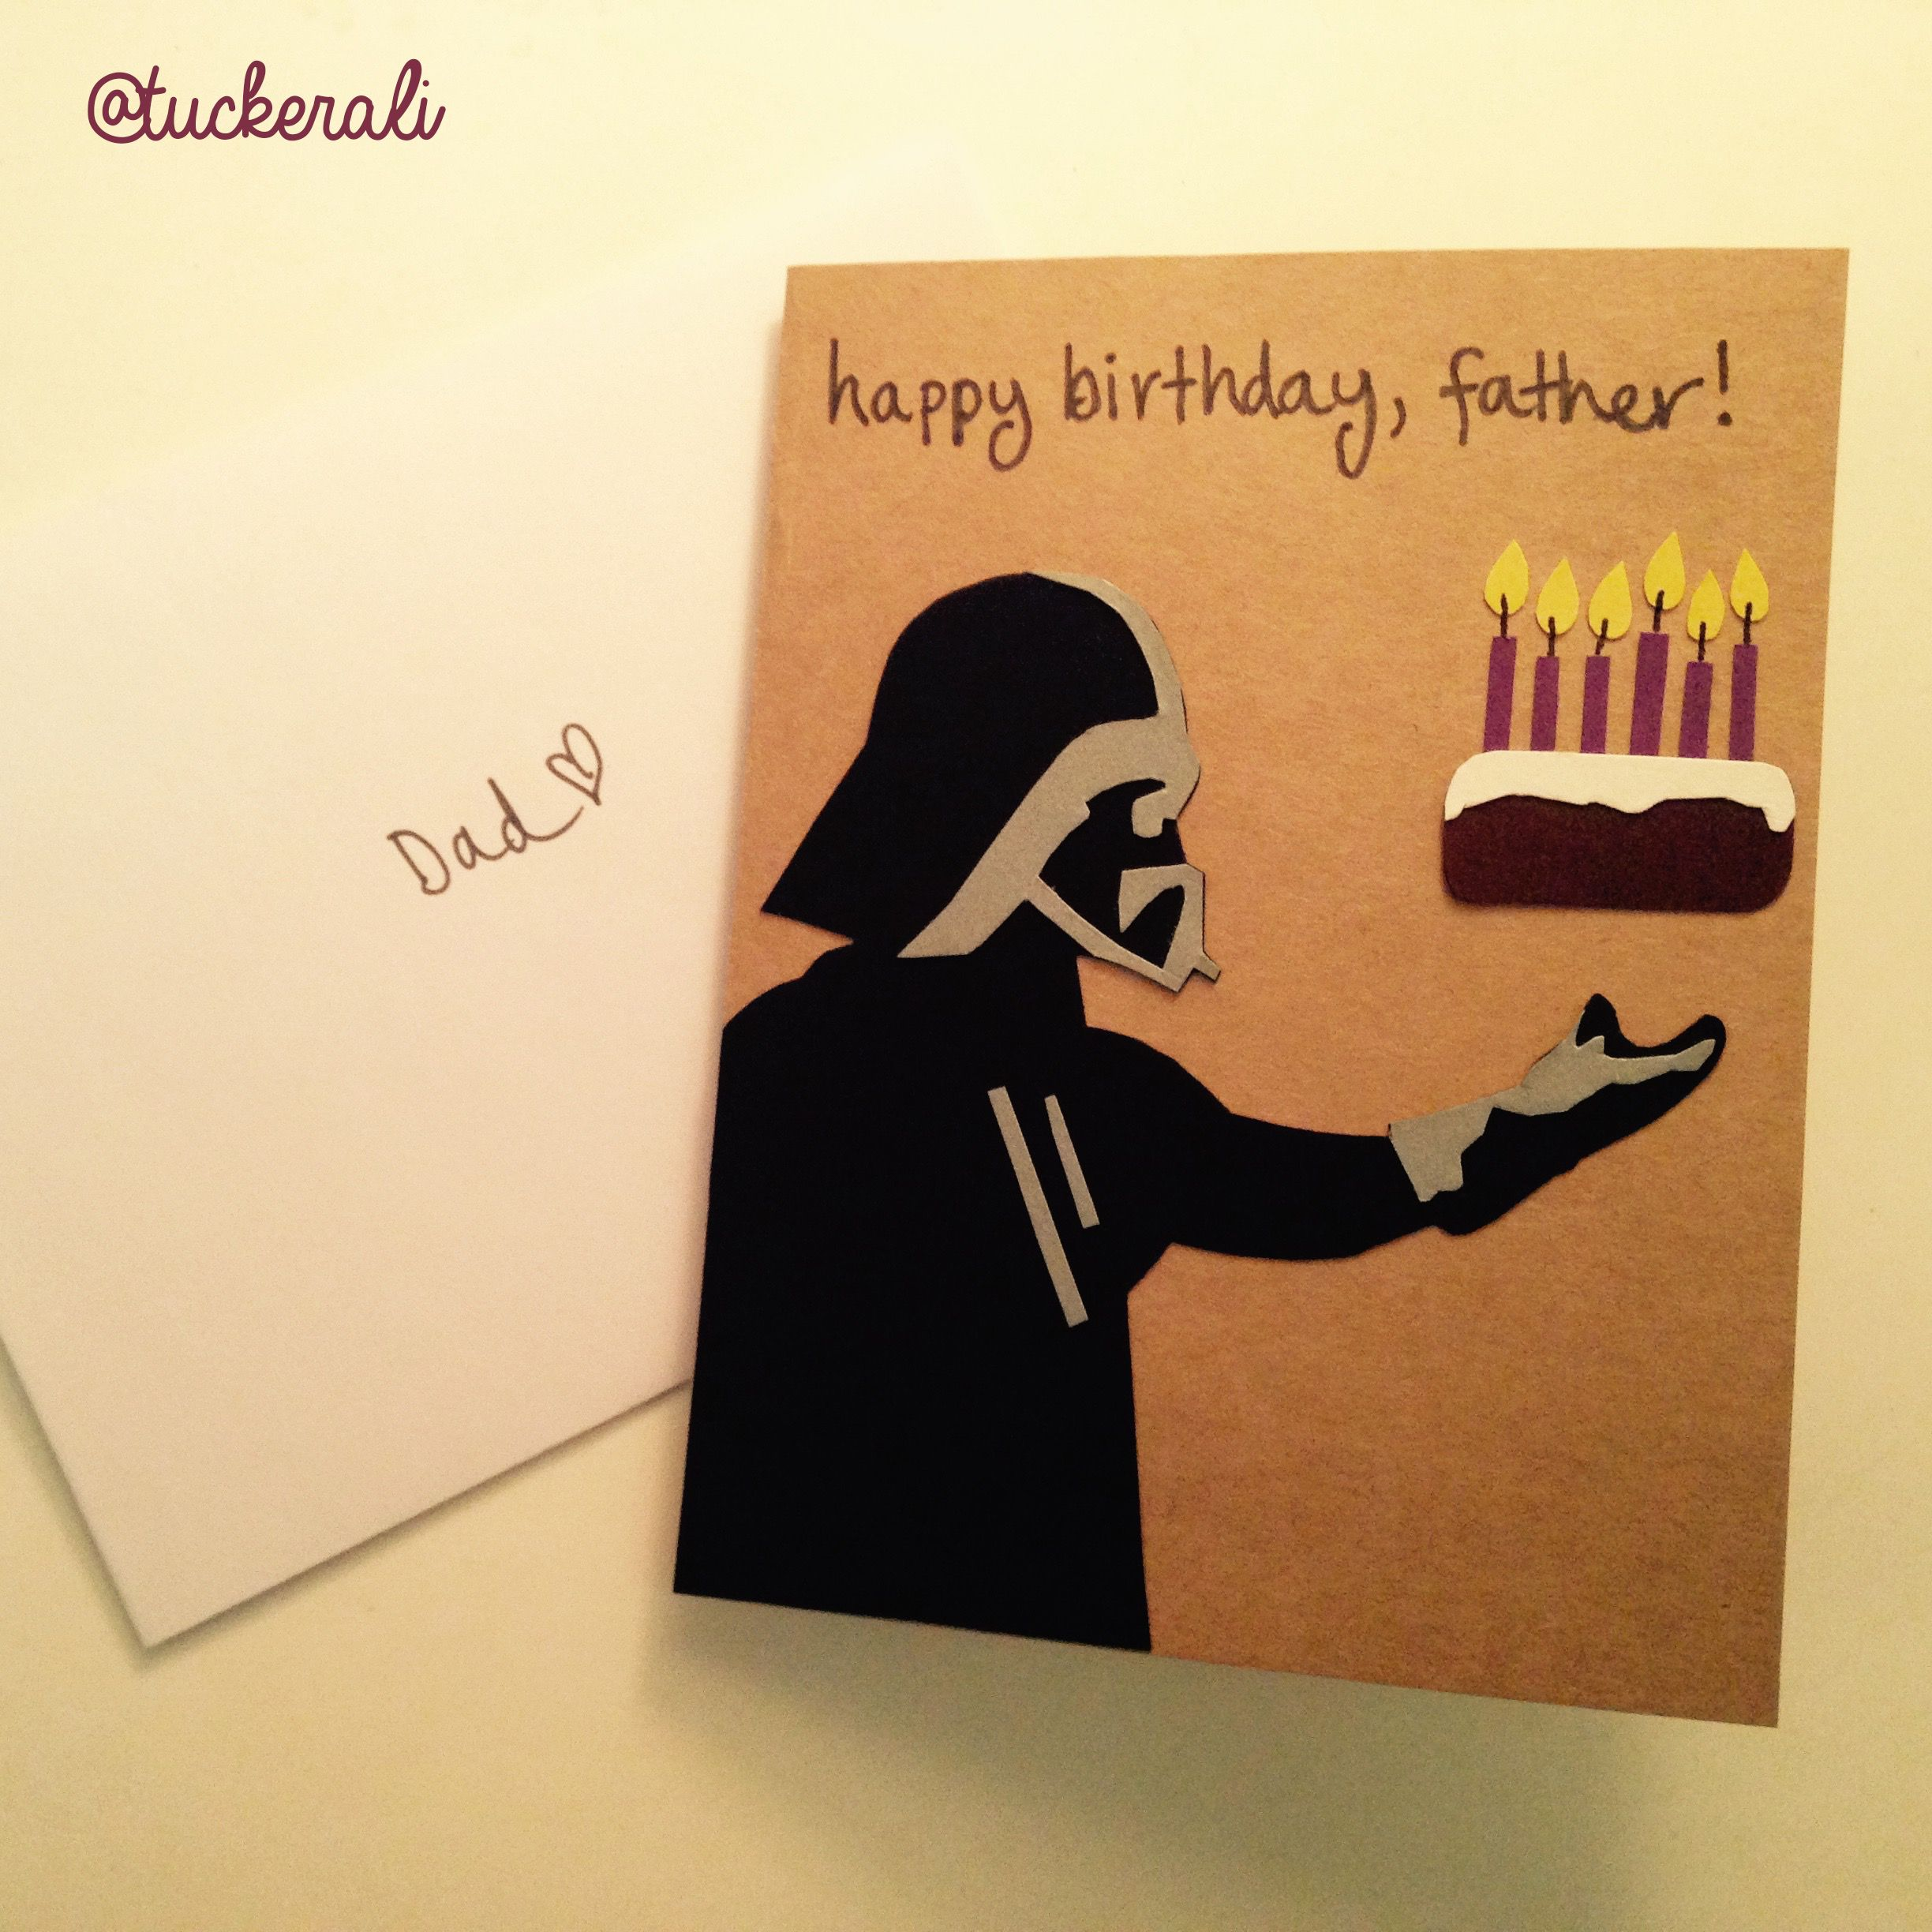 Today In Ali Does Crafts Darth Vader Birthday Card For Dad Birthdaycard Cards Birthdaycardfordad Starwars Darthvader Cake